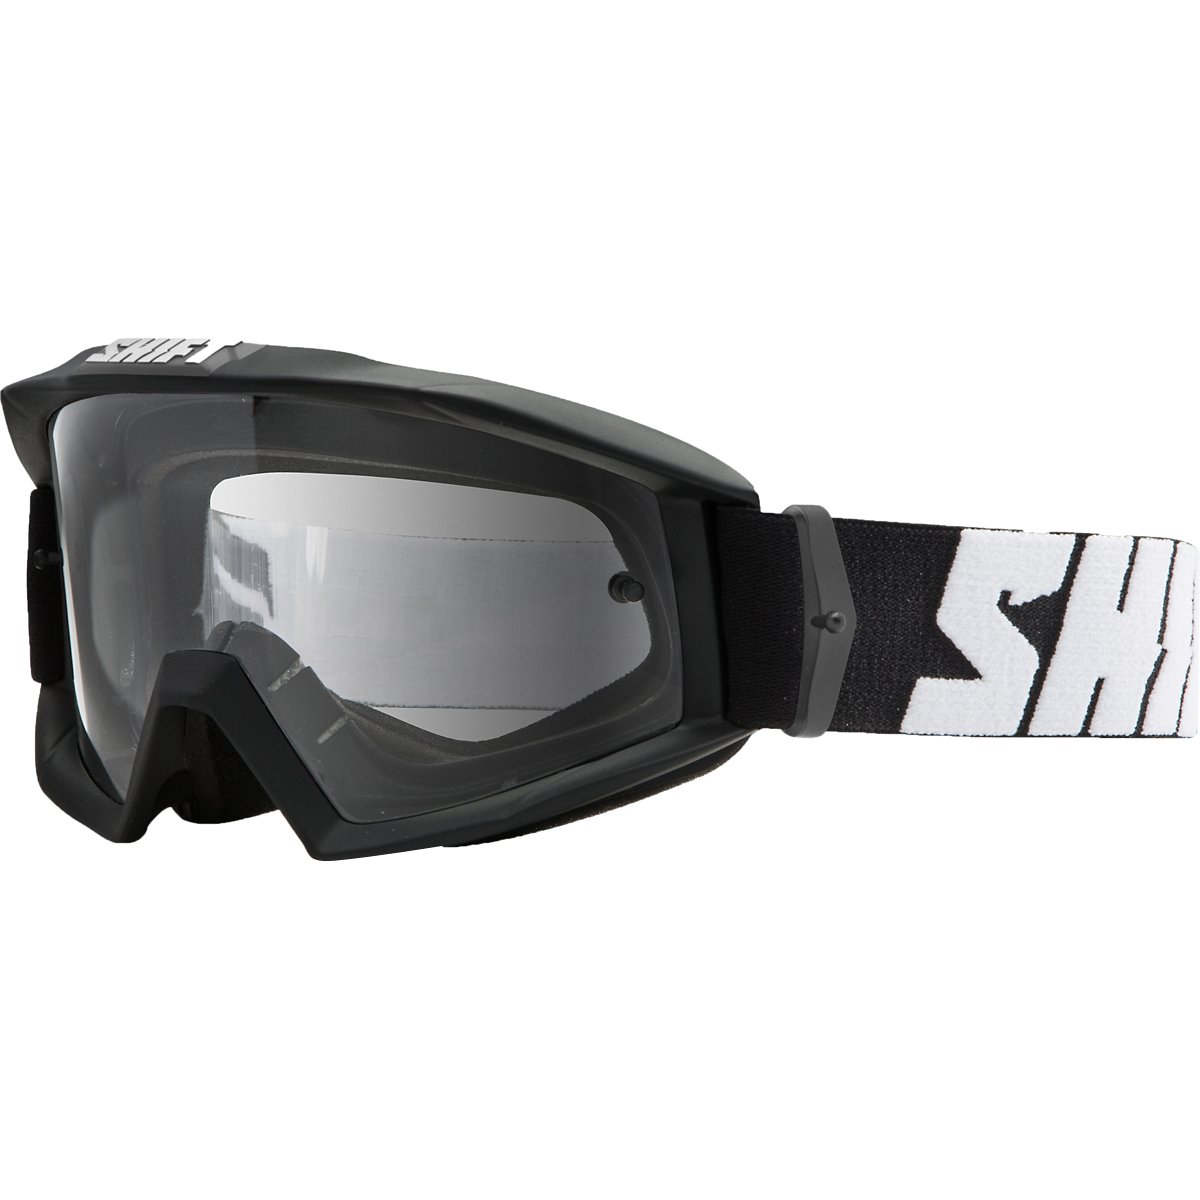 Shift Racing Nano Adult MX Motorcycle Goggles Eyewear - Matte Black/Clear/No Size